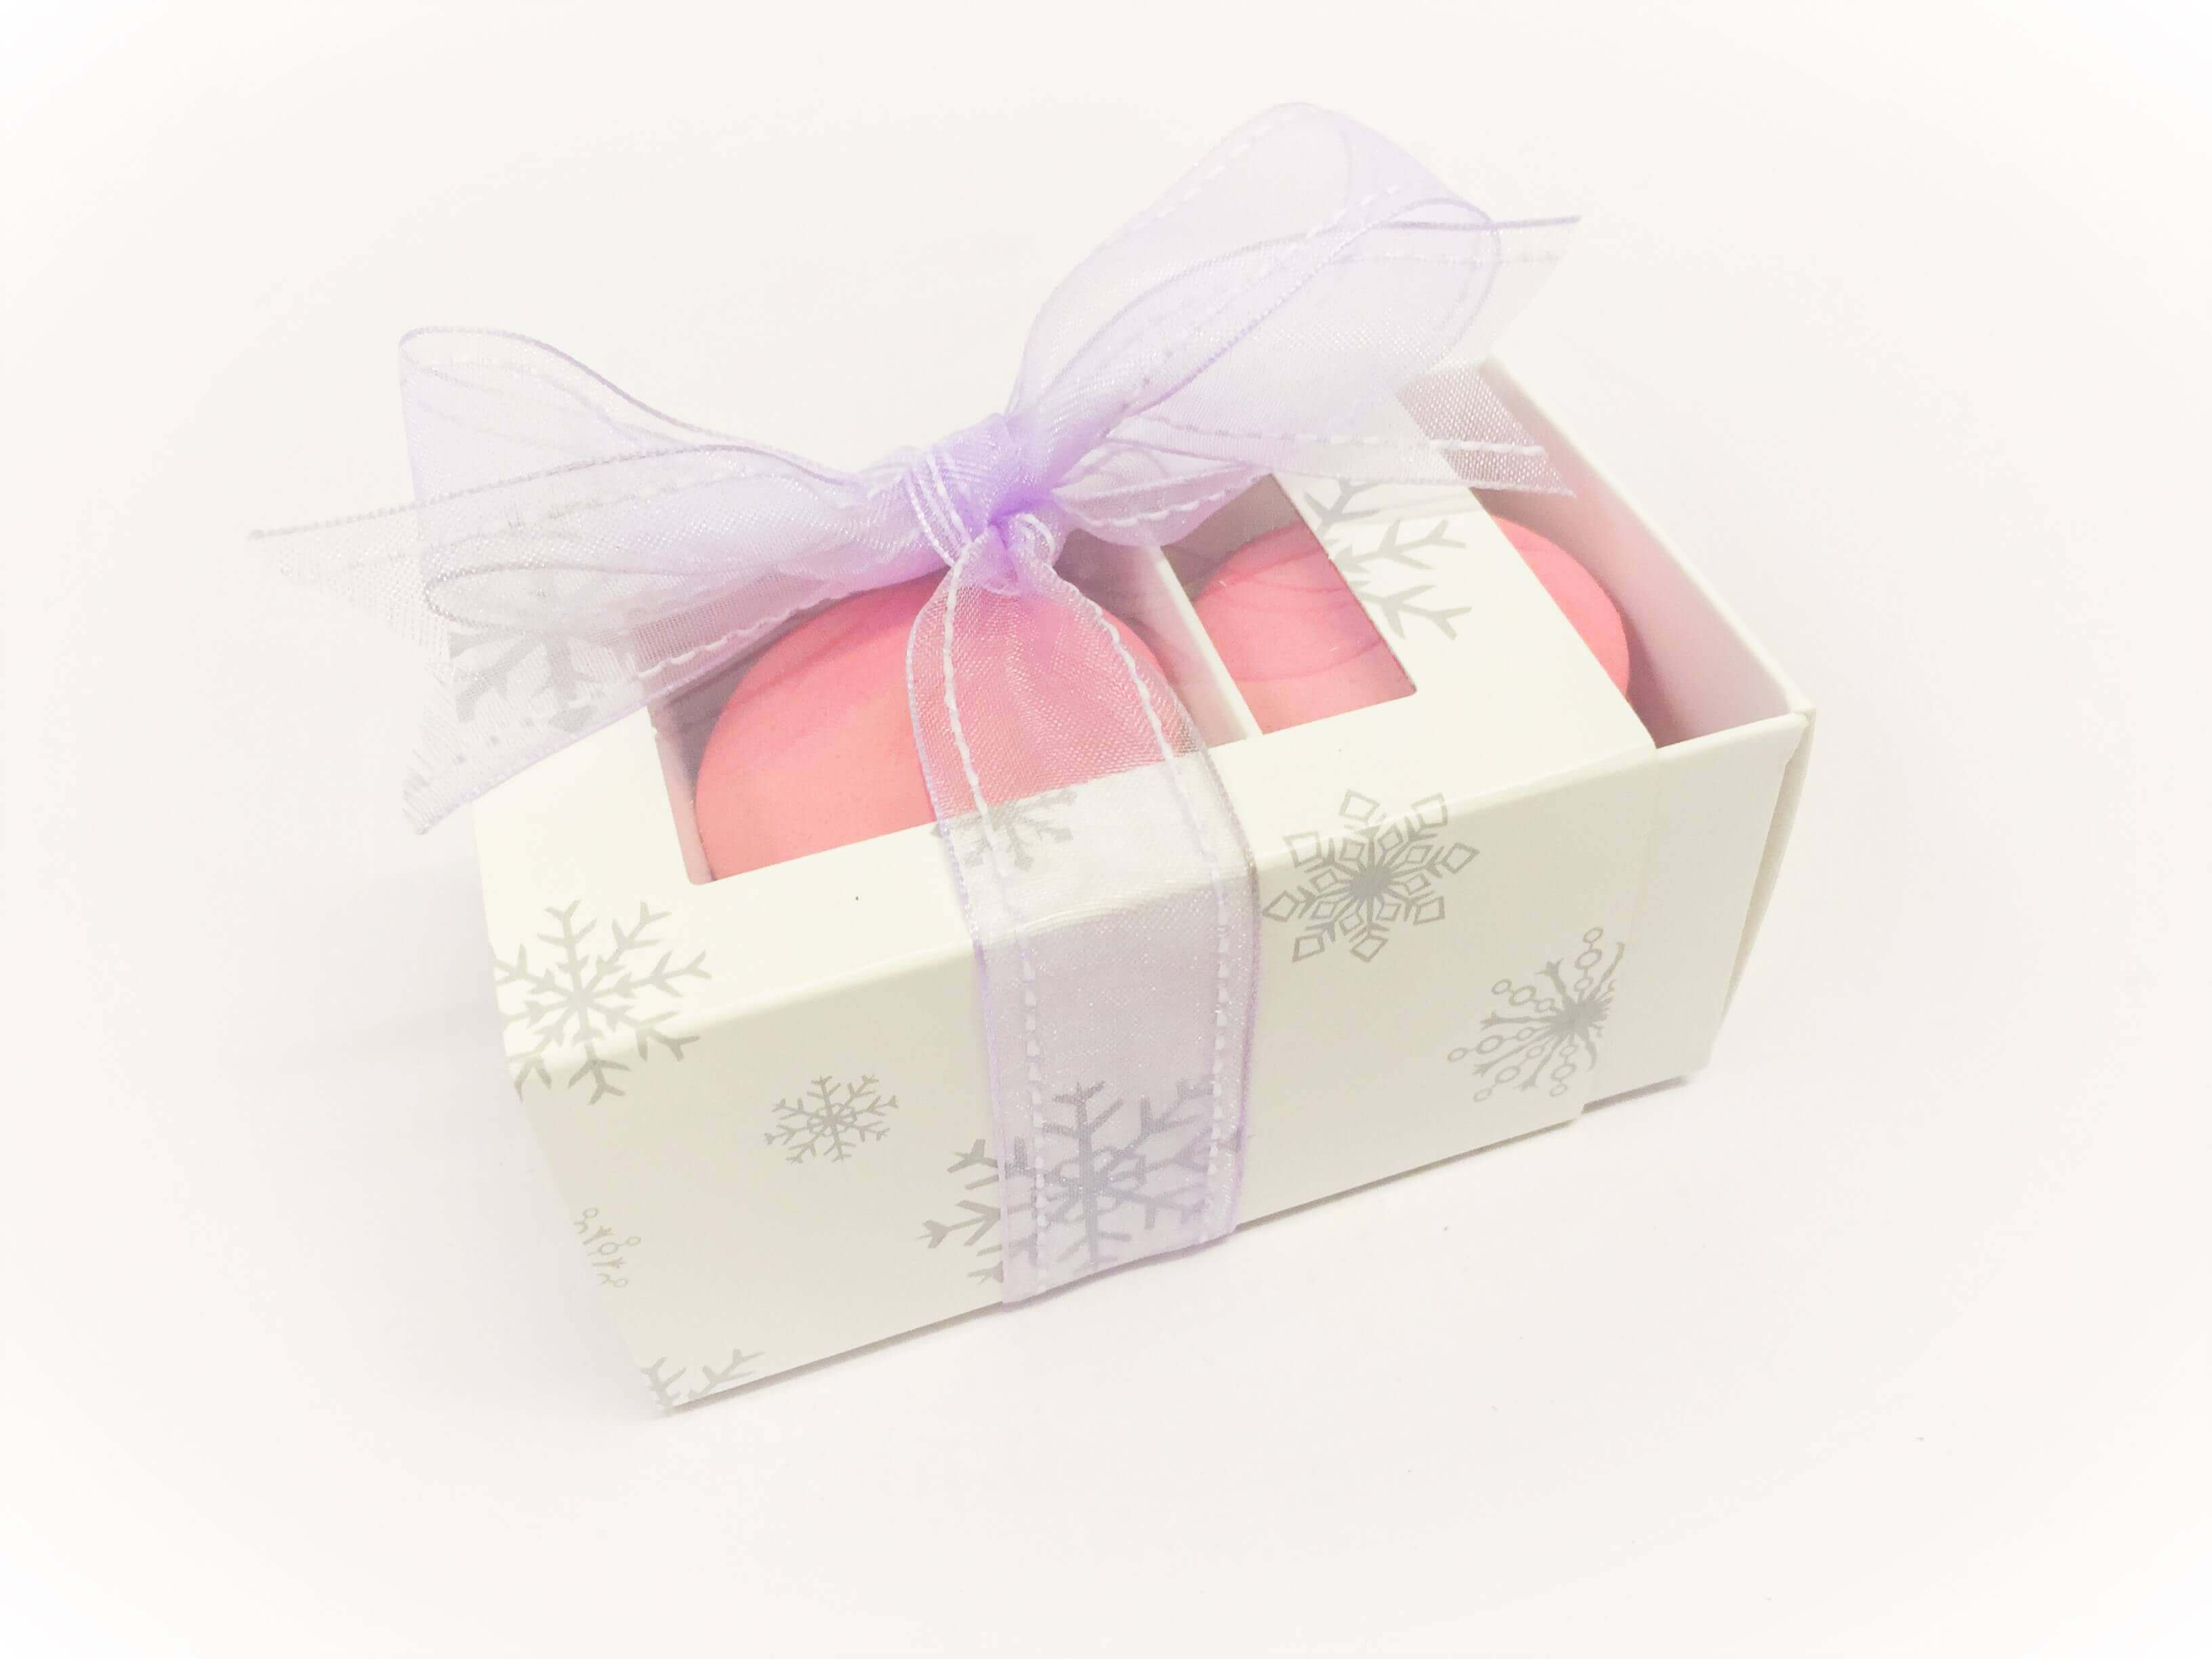 3 Pack Macaron Slider Box with Xmas Print, windowed